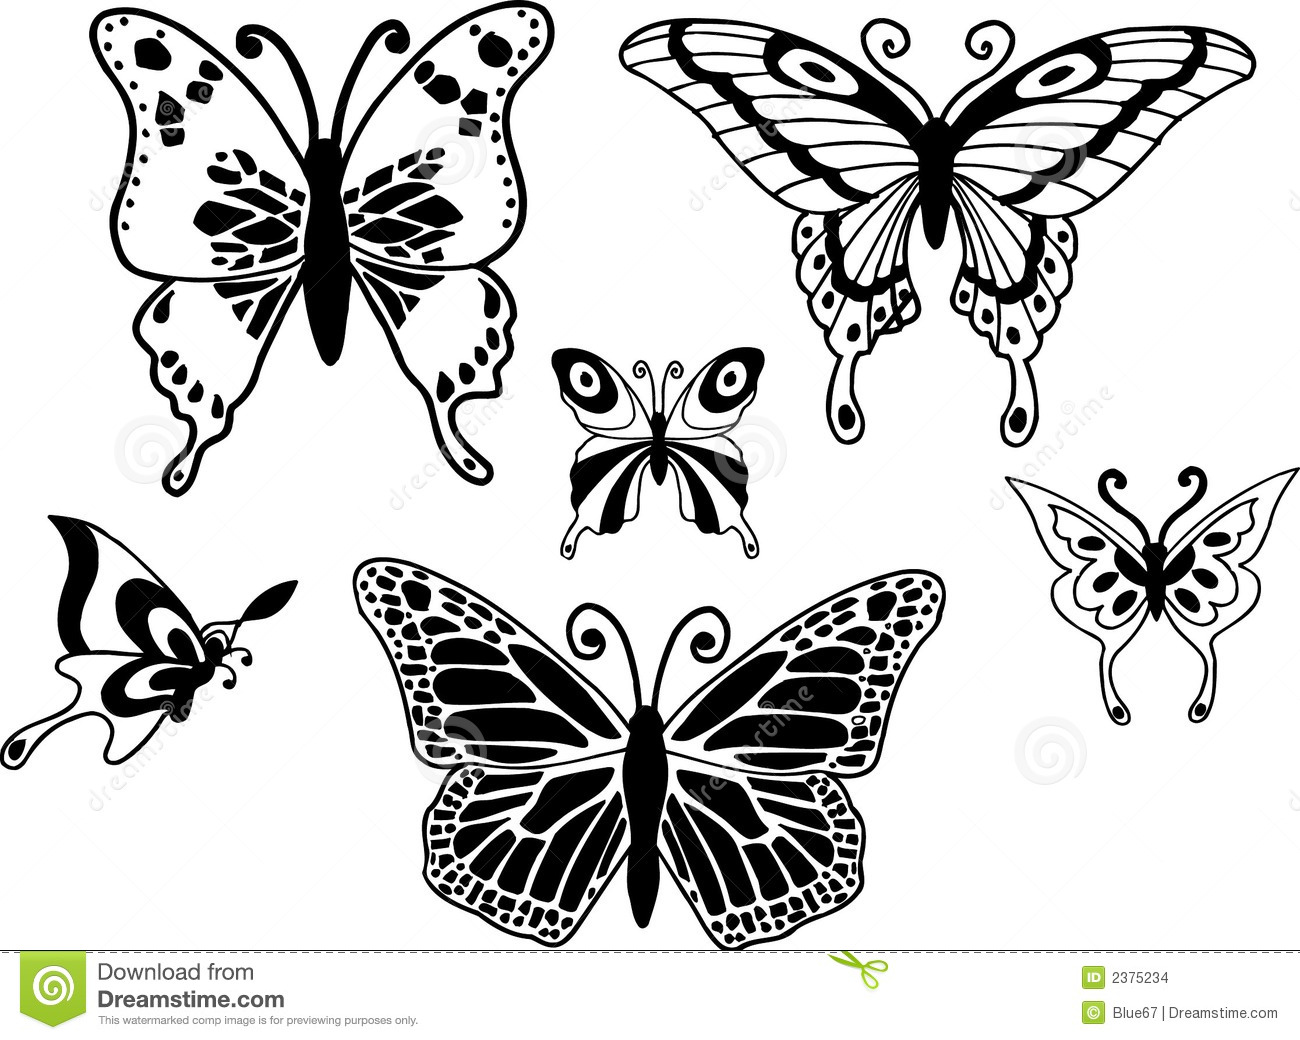 Butterfly Illustration Design Elements On White Background